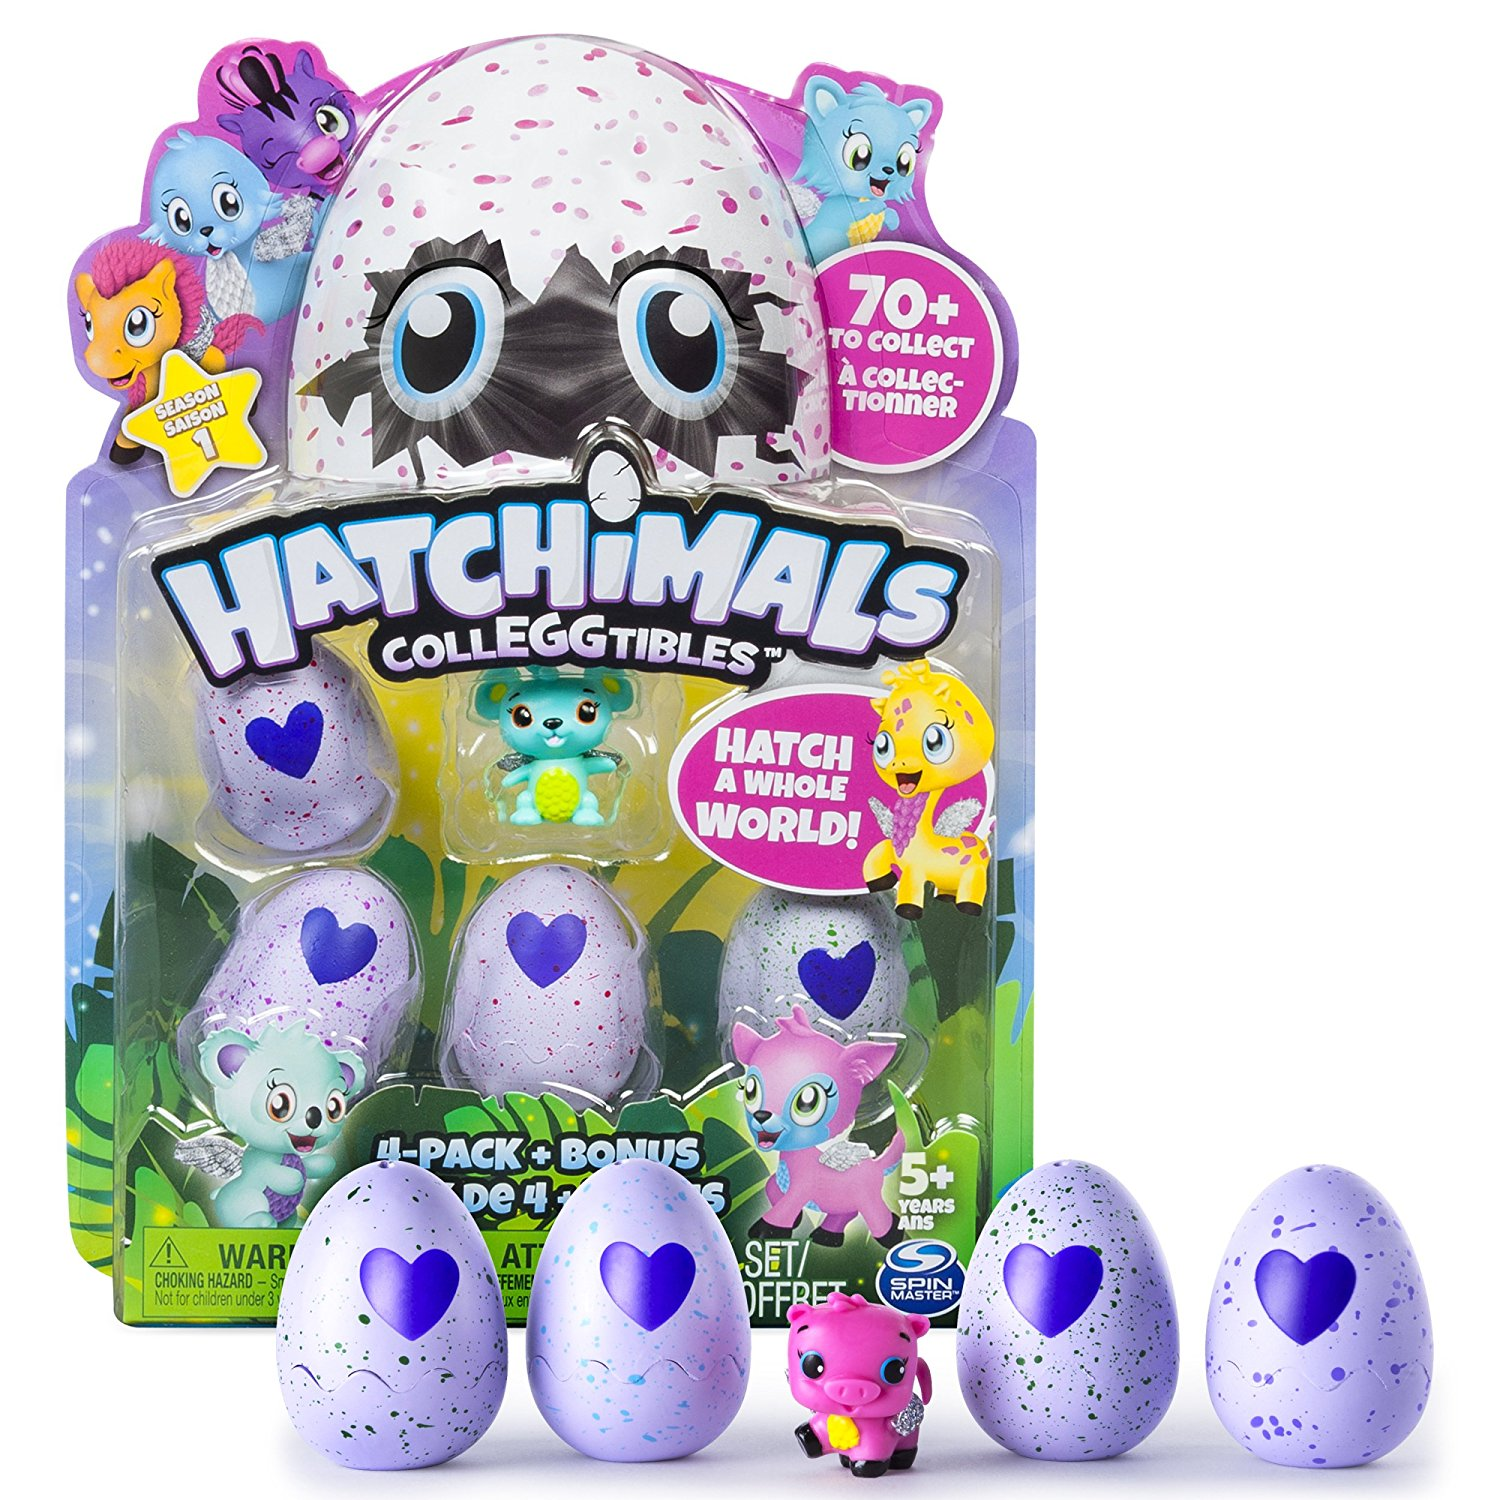 Dream Toys 2017 Hatchimals Colleggtibles 4-pack + bonus